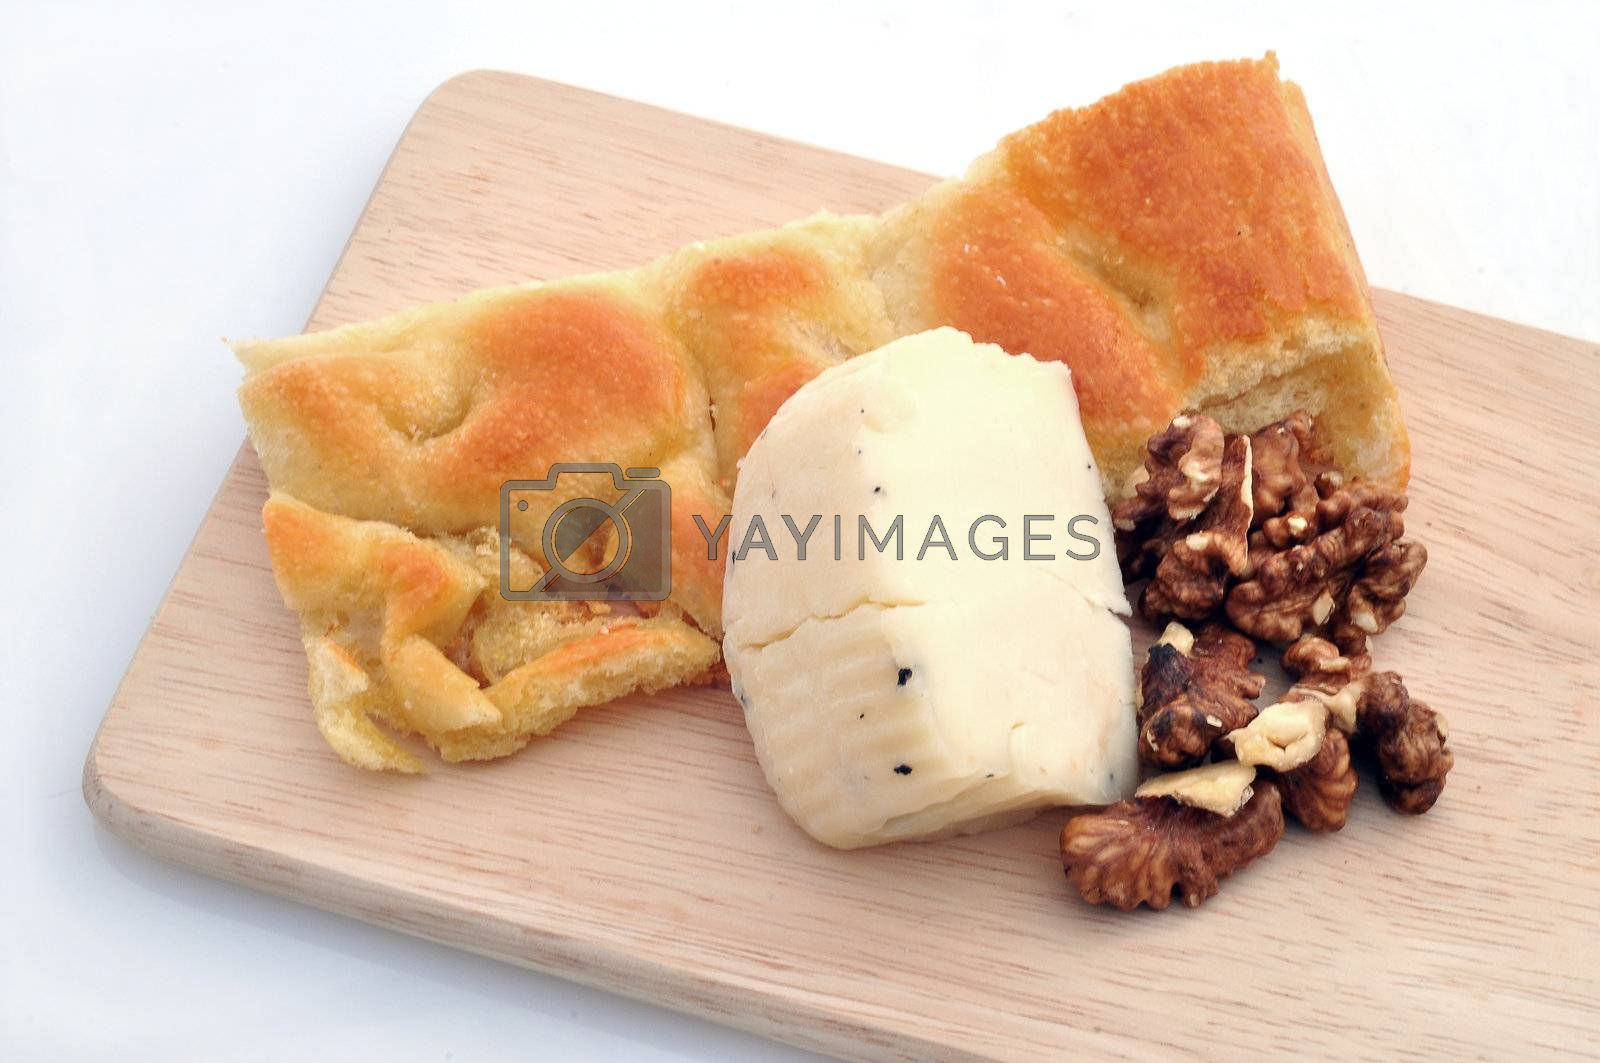 Focaccia, cheese and nuts on white background